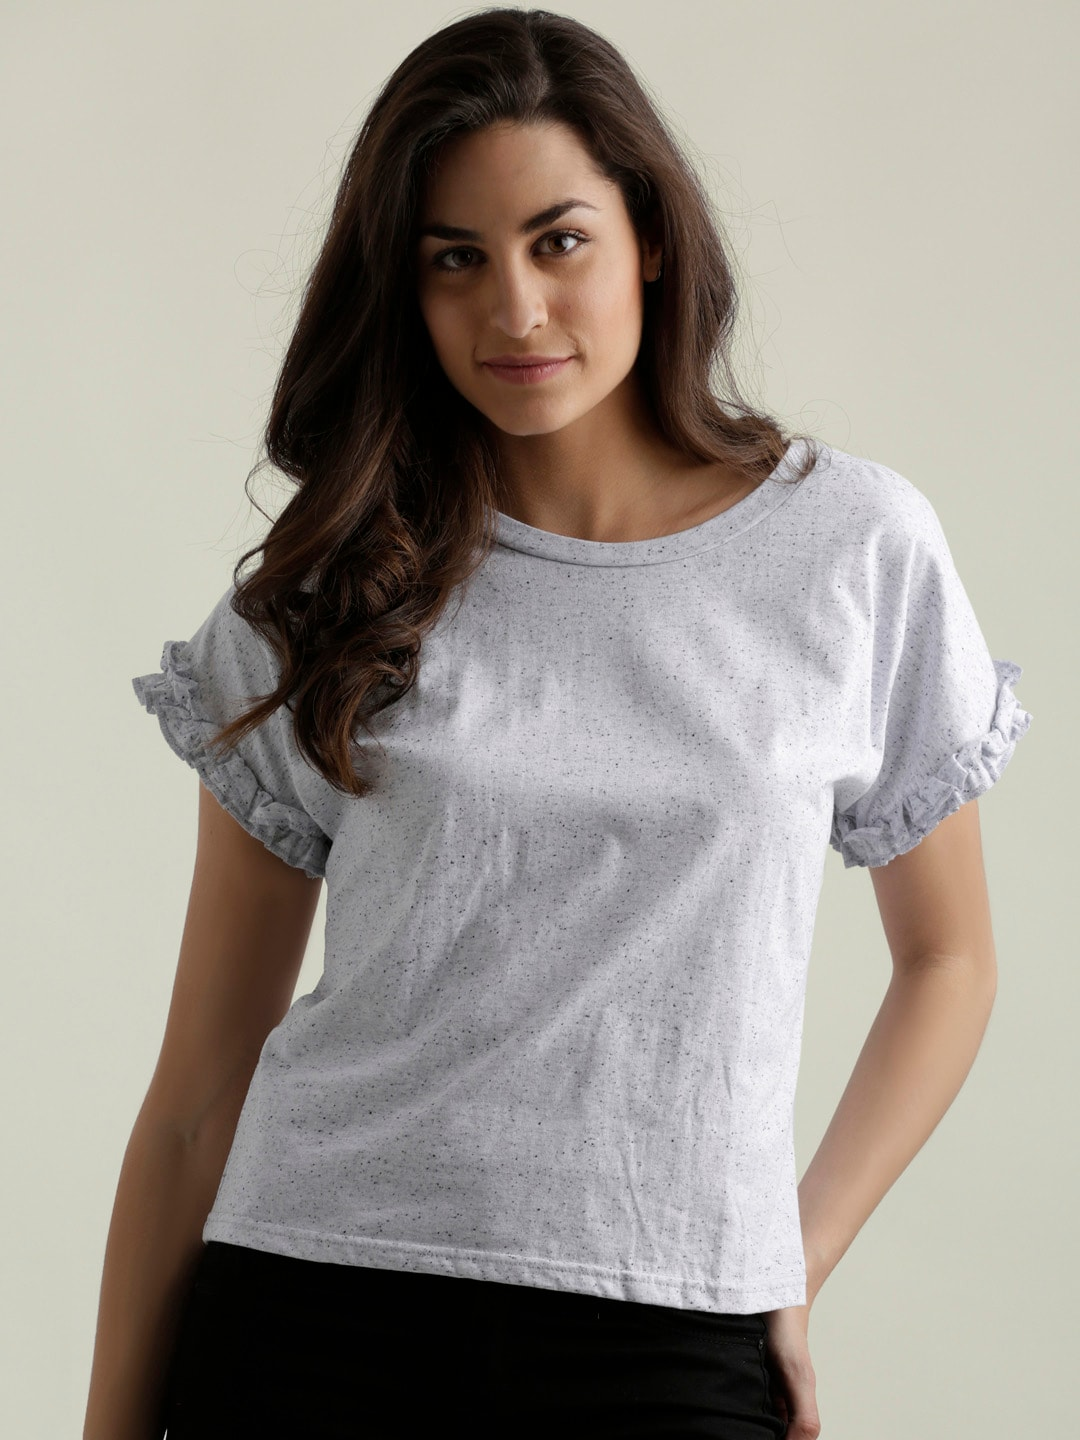 52e0f390a1caf8 Miss Chase Cotton Tops - Buy Miss Chase Cotton Tops online in India